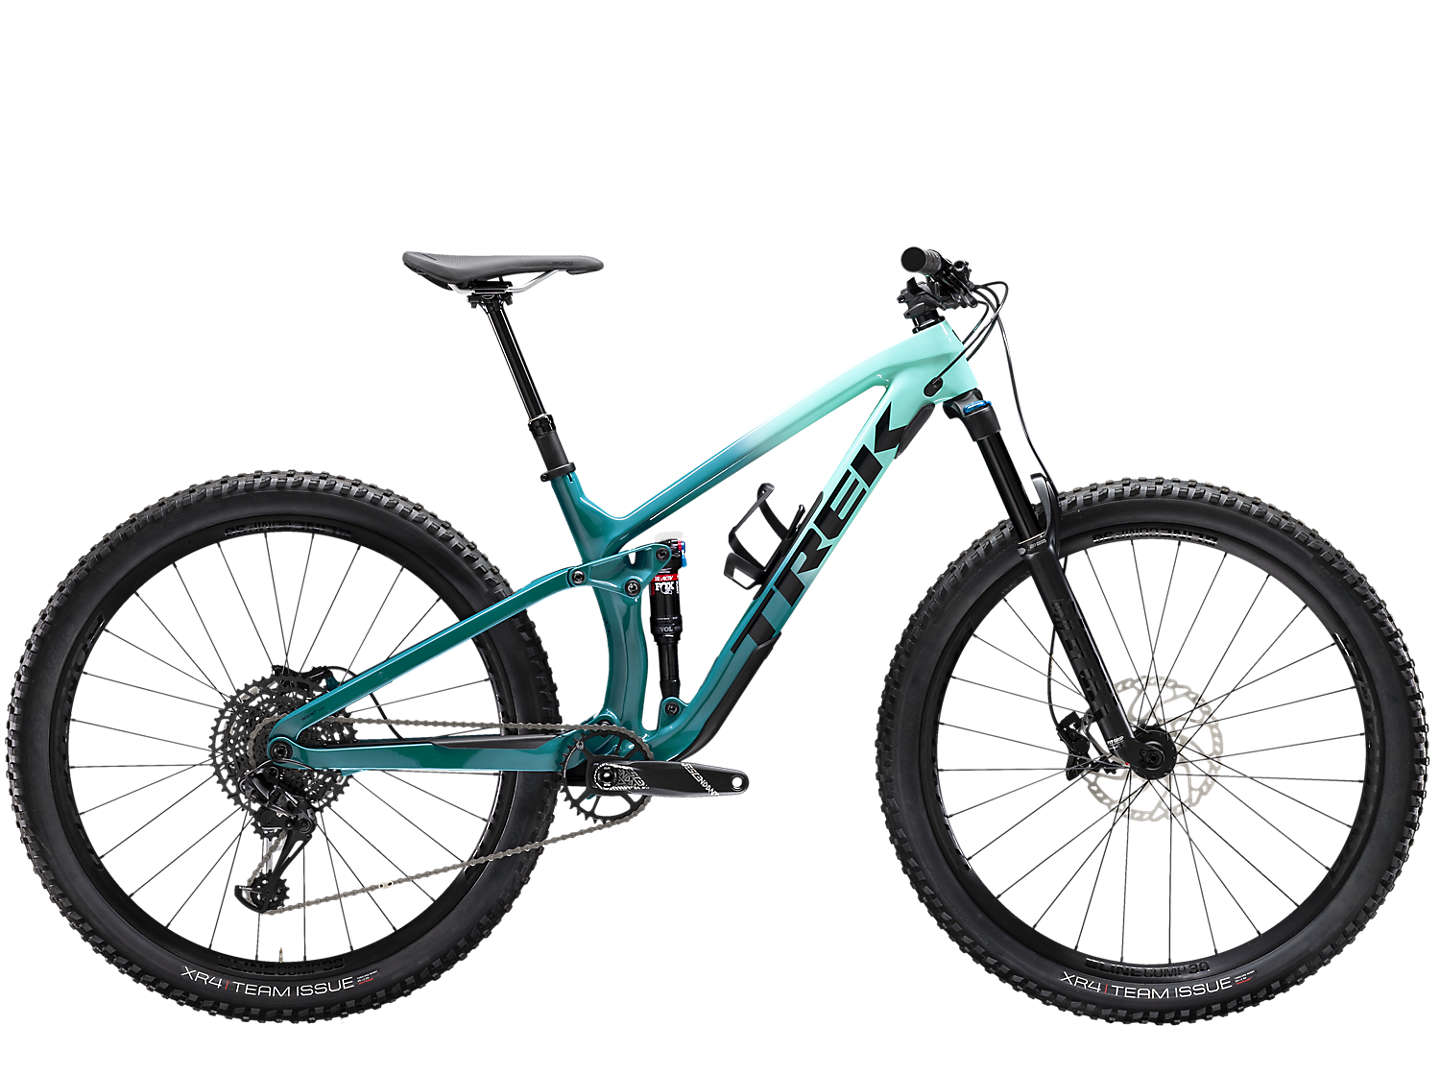 Bicicleta aro 29 Trek Full Suspension Fuel EX 9.7